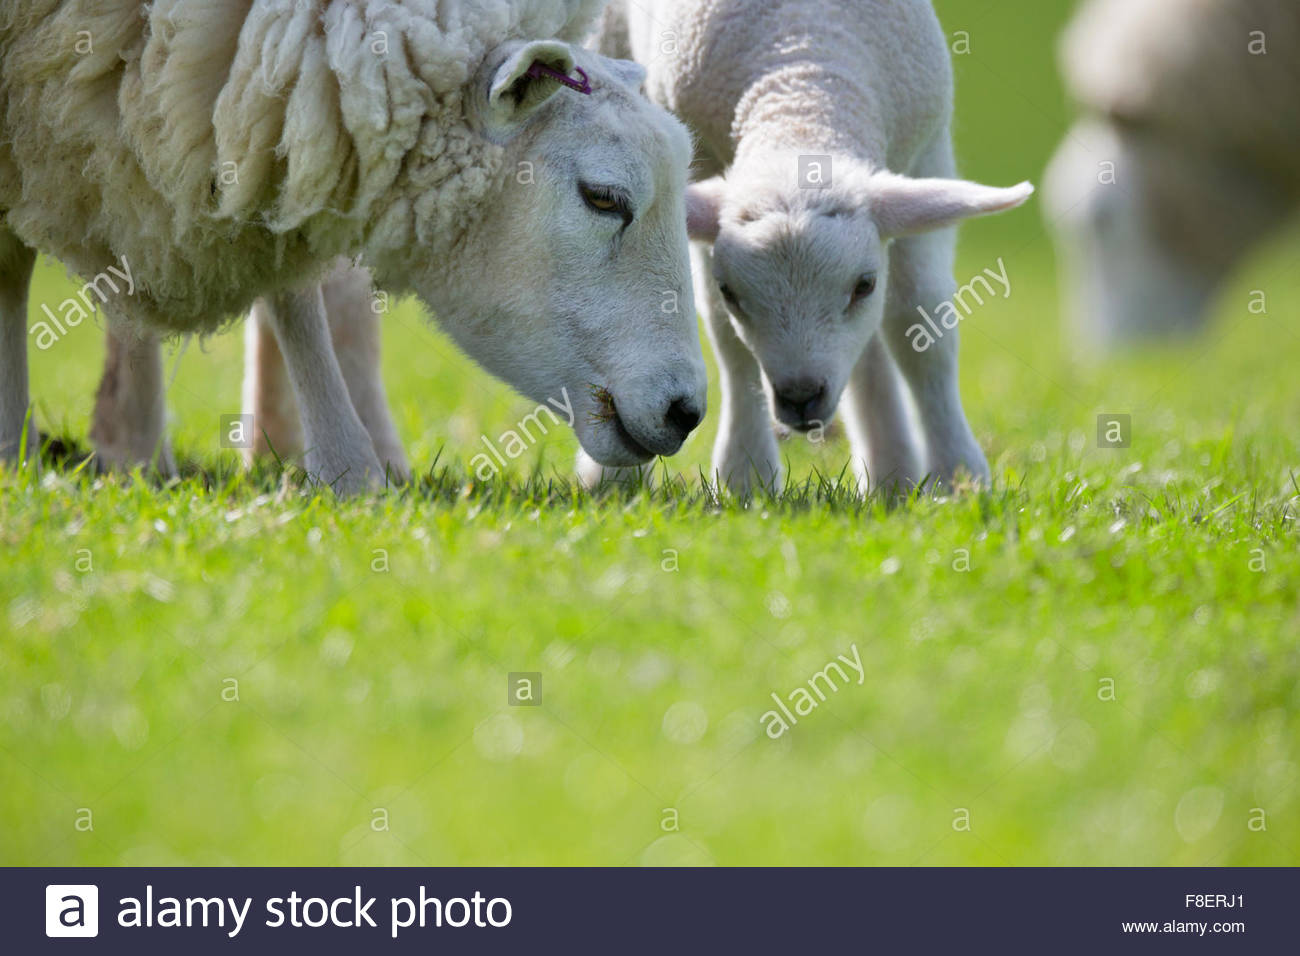 Sheep and lamb grazing in green spring grass - Stock Image